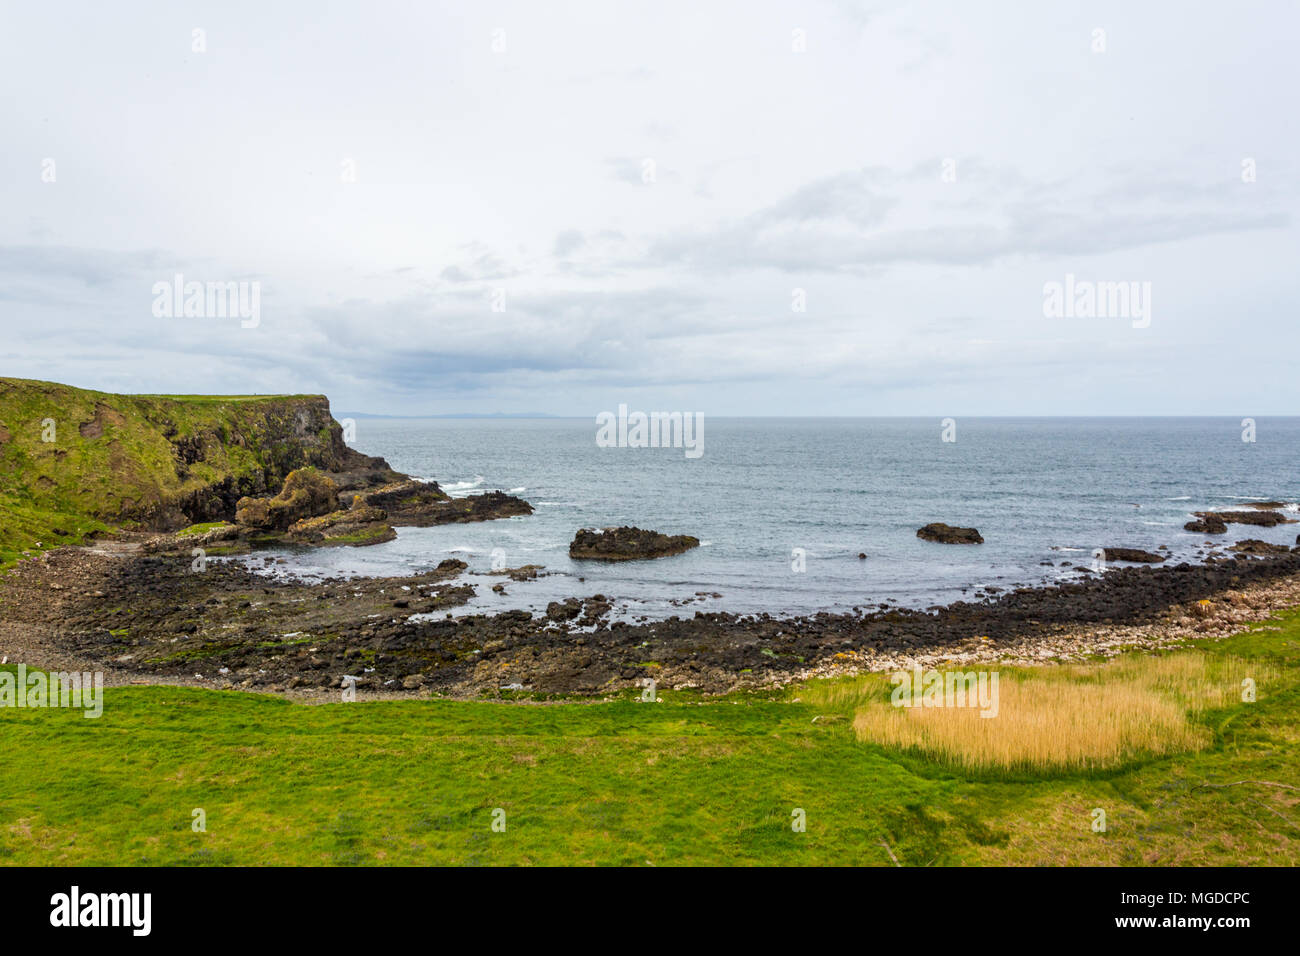 Antrim/N. Ireland - May 30, 2015: Giant's Causeway, a natural wonder produced by volcanic, hexagonal basalt rock flowing into the ocean on the Antrim. - Stock Image